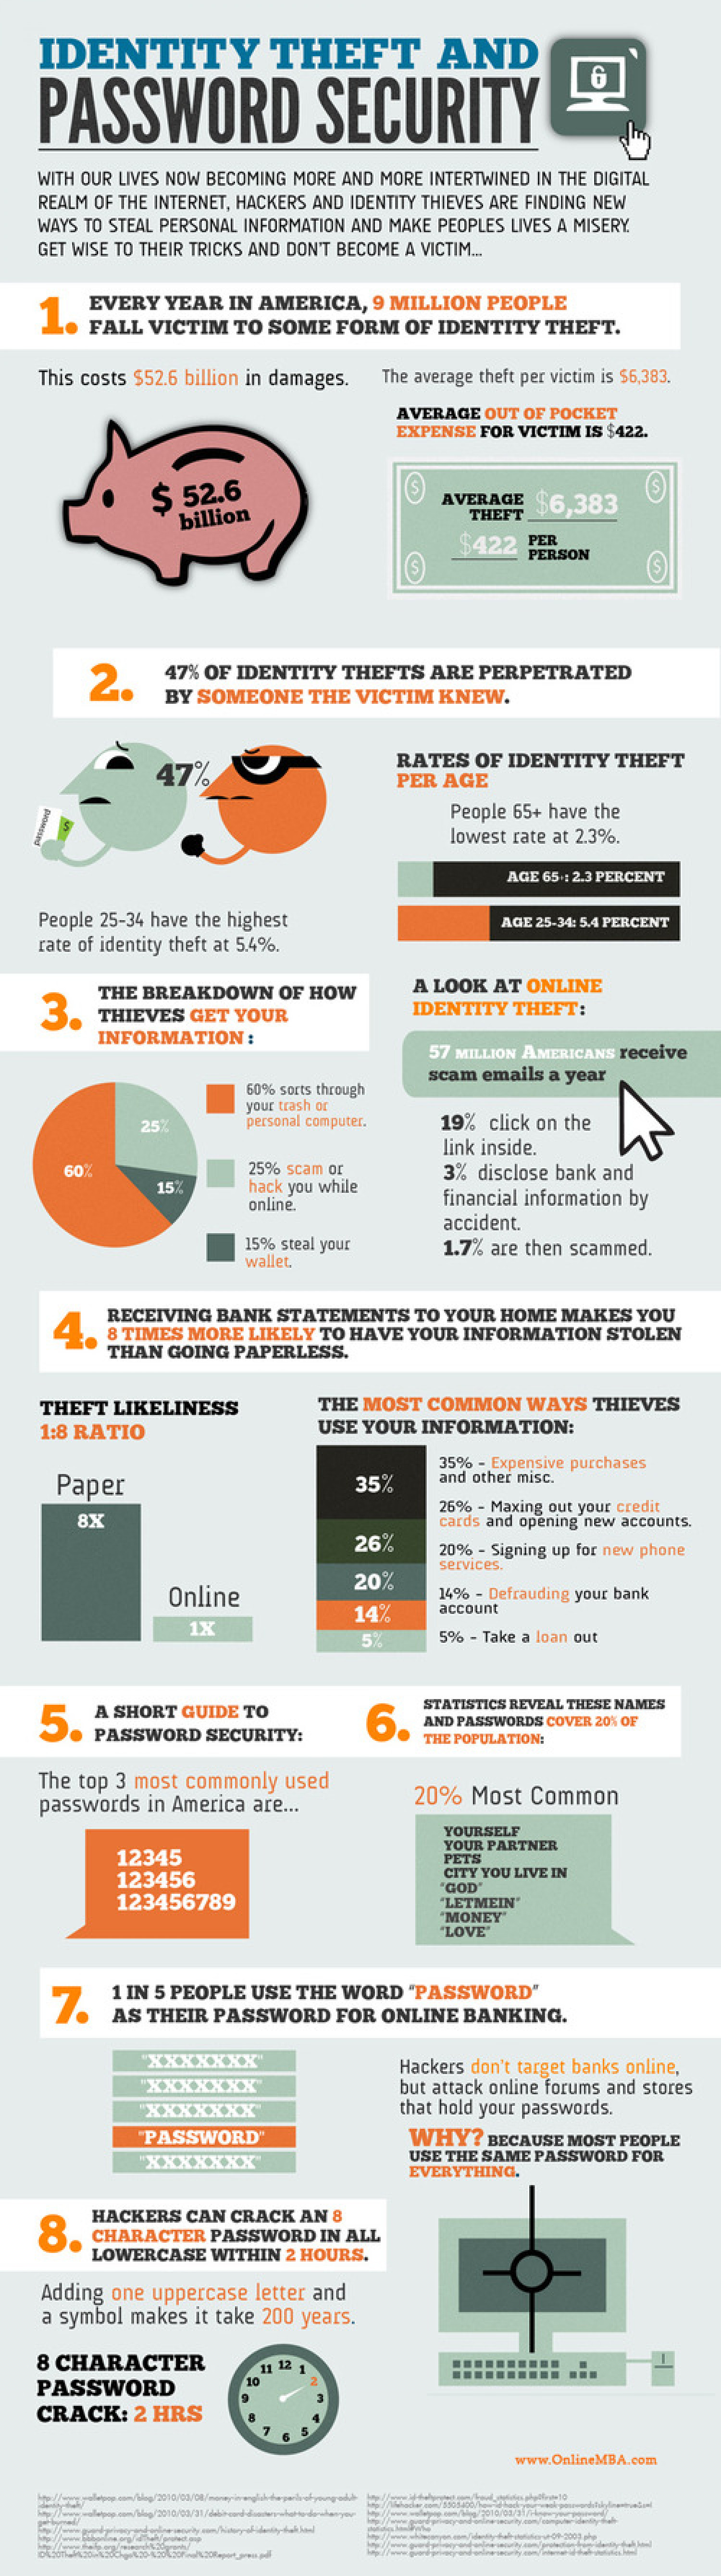 Identity Theft Facts and Figures Infographic